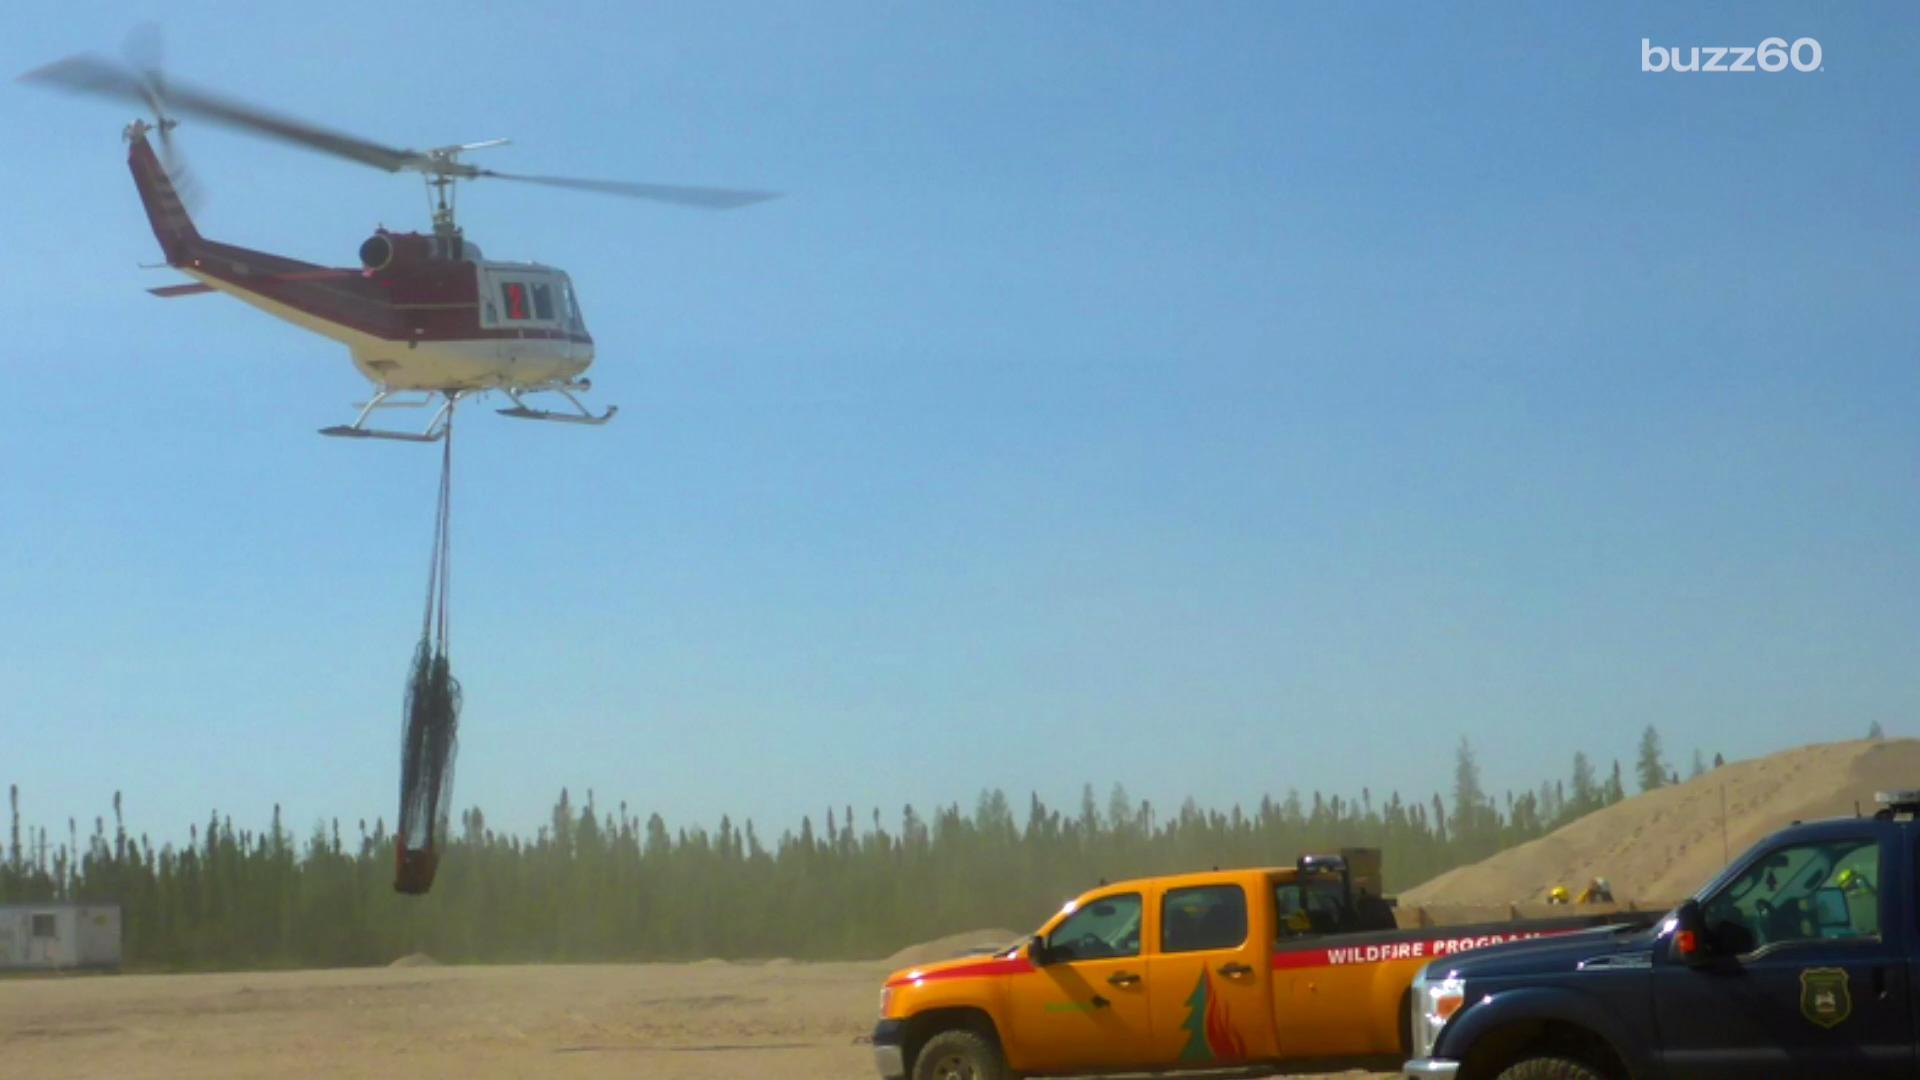 Stubborn Bear Had to Be Airlifted Back to Forest